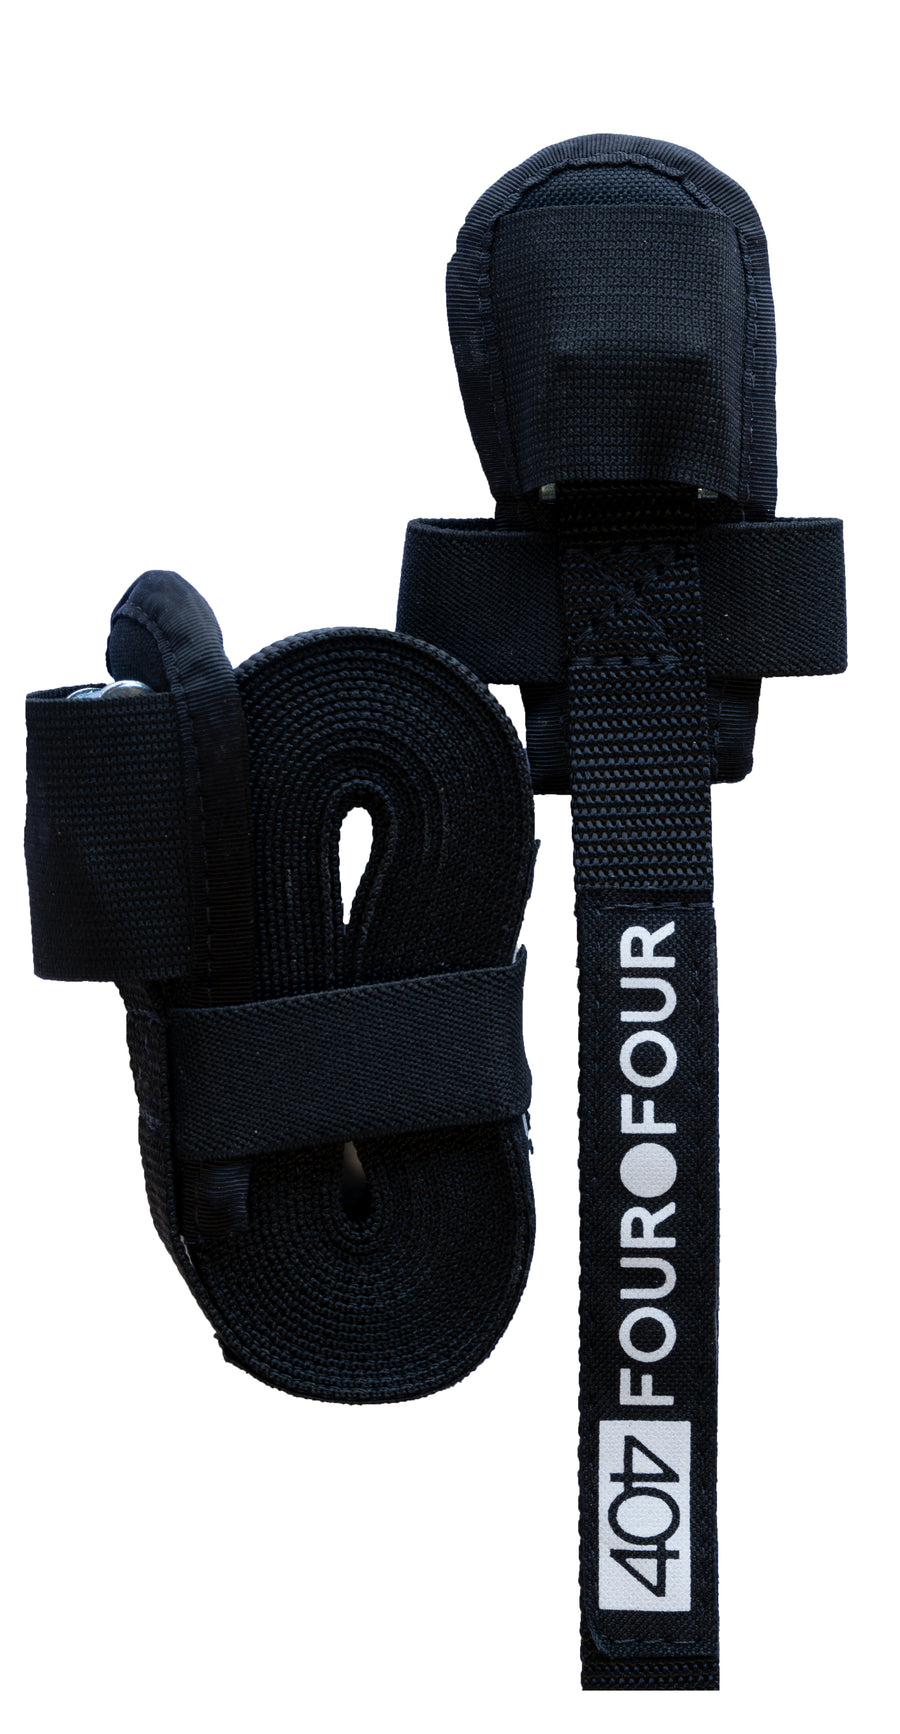 404 Basecamp Tie Down Straps